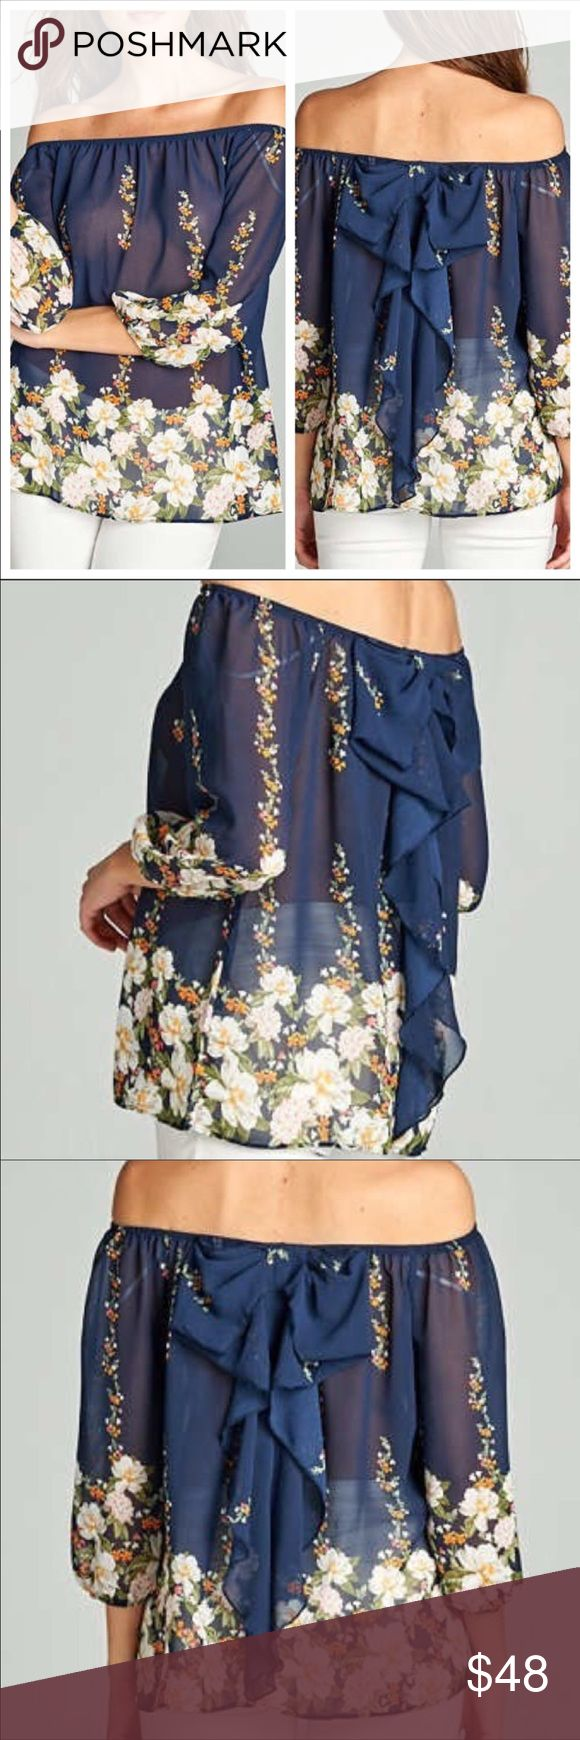 Stunning bow back top navy with florals NWT Stunning bow back top navy with florals NWT. Brand new for the summer 2017 fashion!  #fashionweek all purchases included one free week luxury fashion designer rental from Lavish Lend as well. Tops Blouses